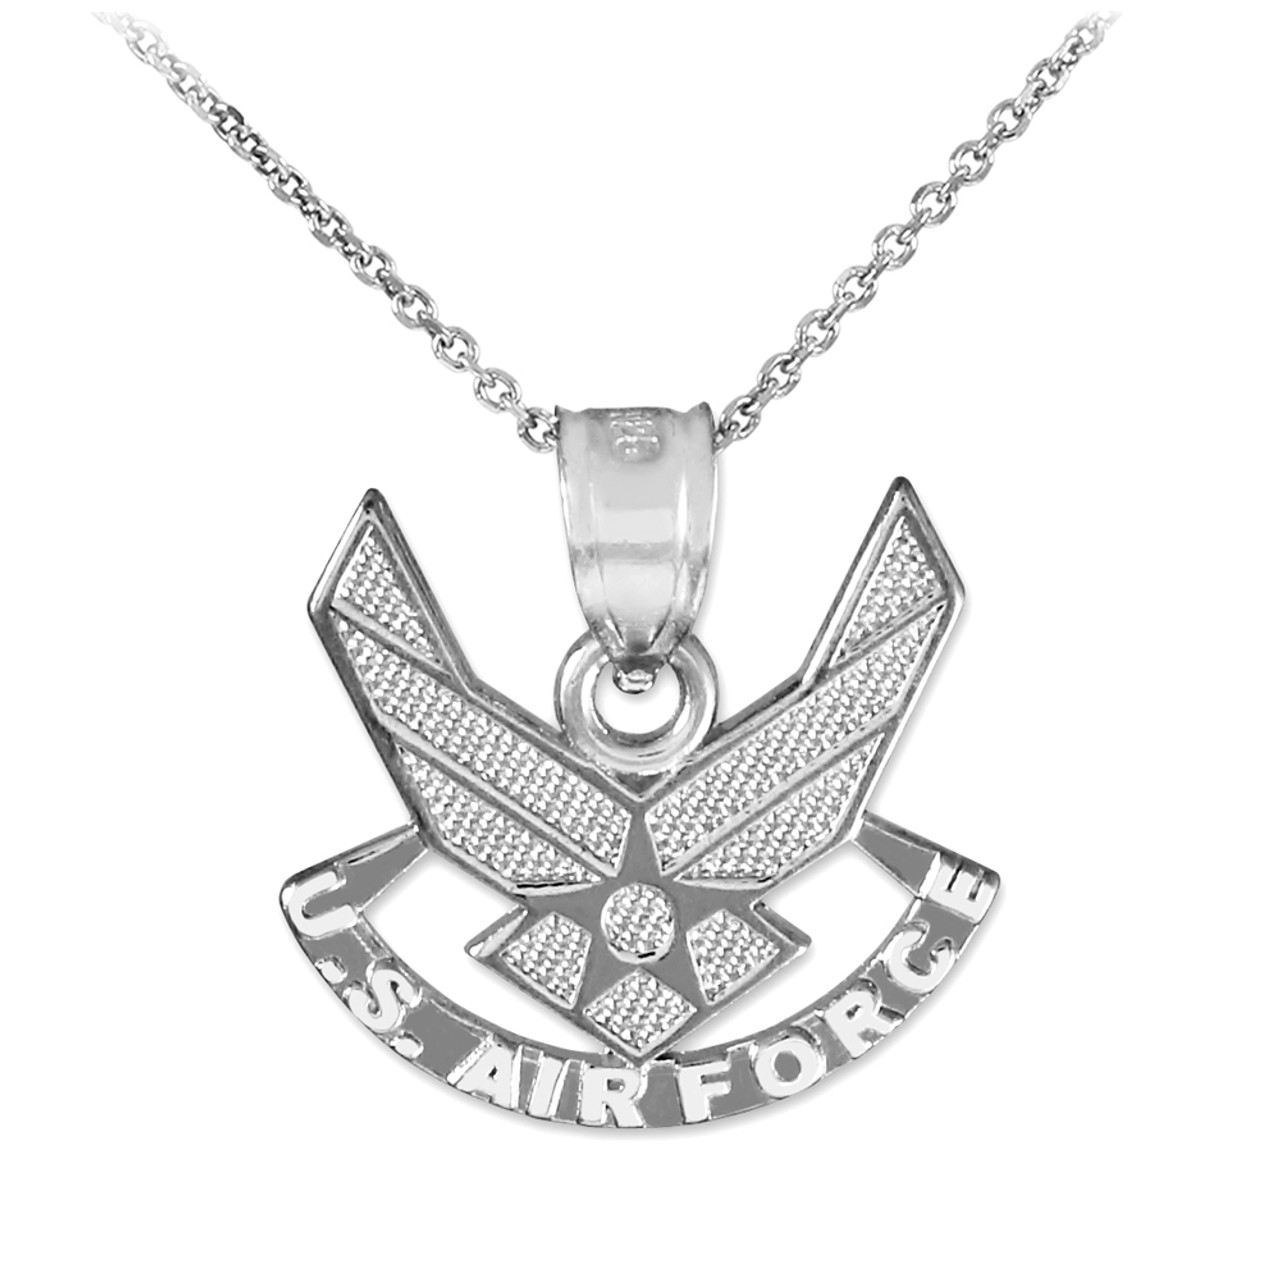 Silver us air force wings pendant necklace aloadofball Choice Image